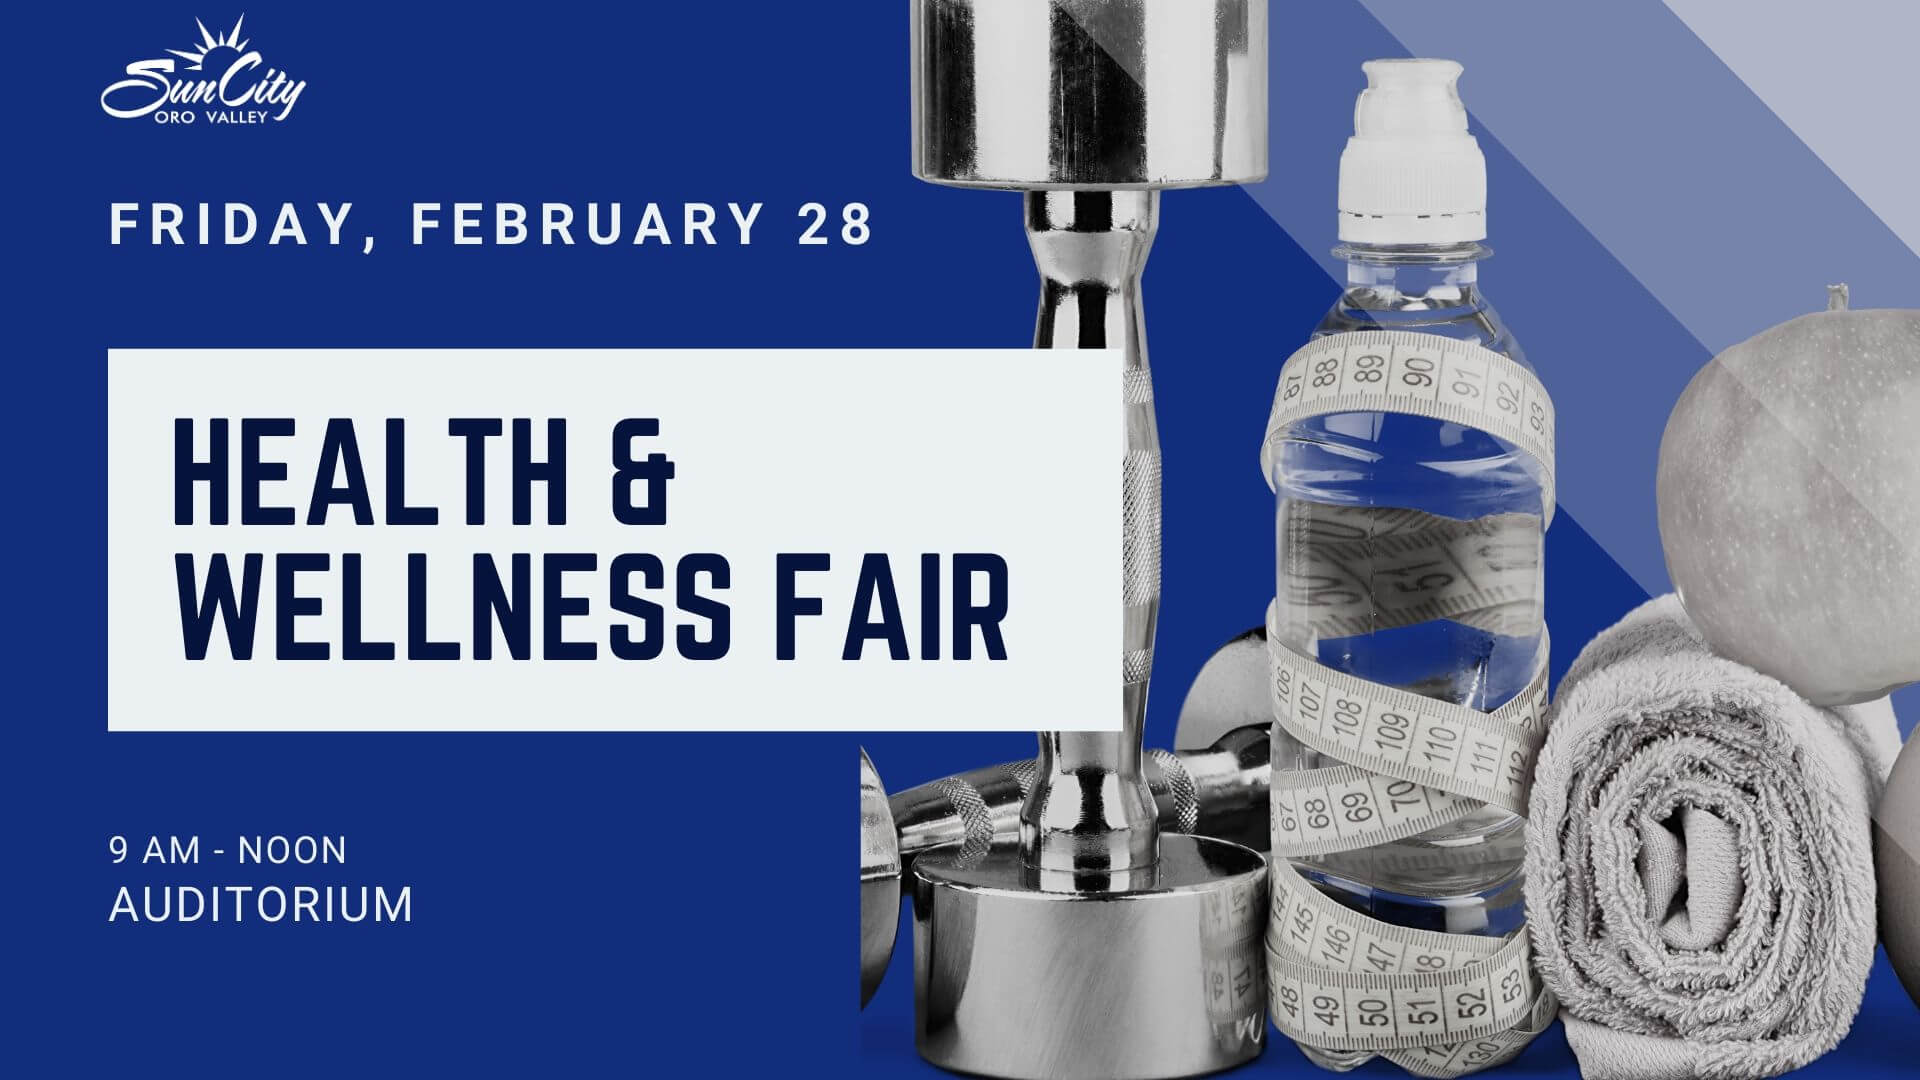 Health & Wellness Fair, Feb 28